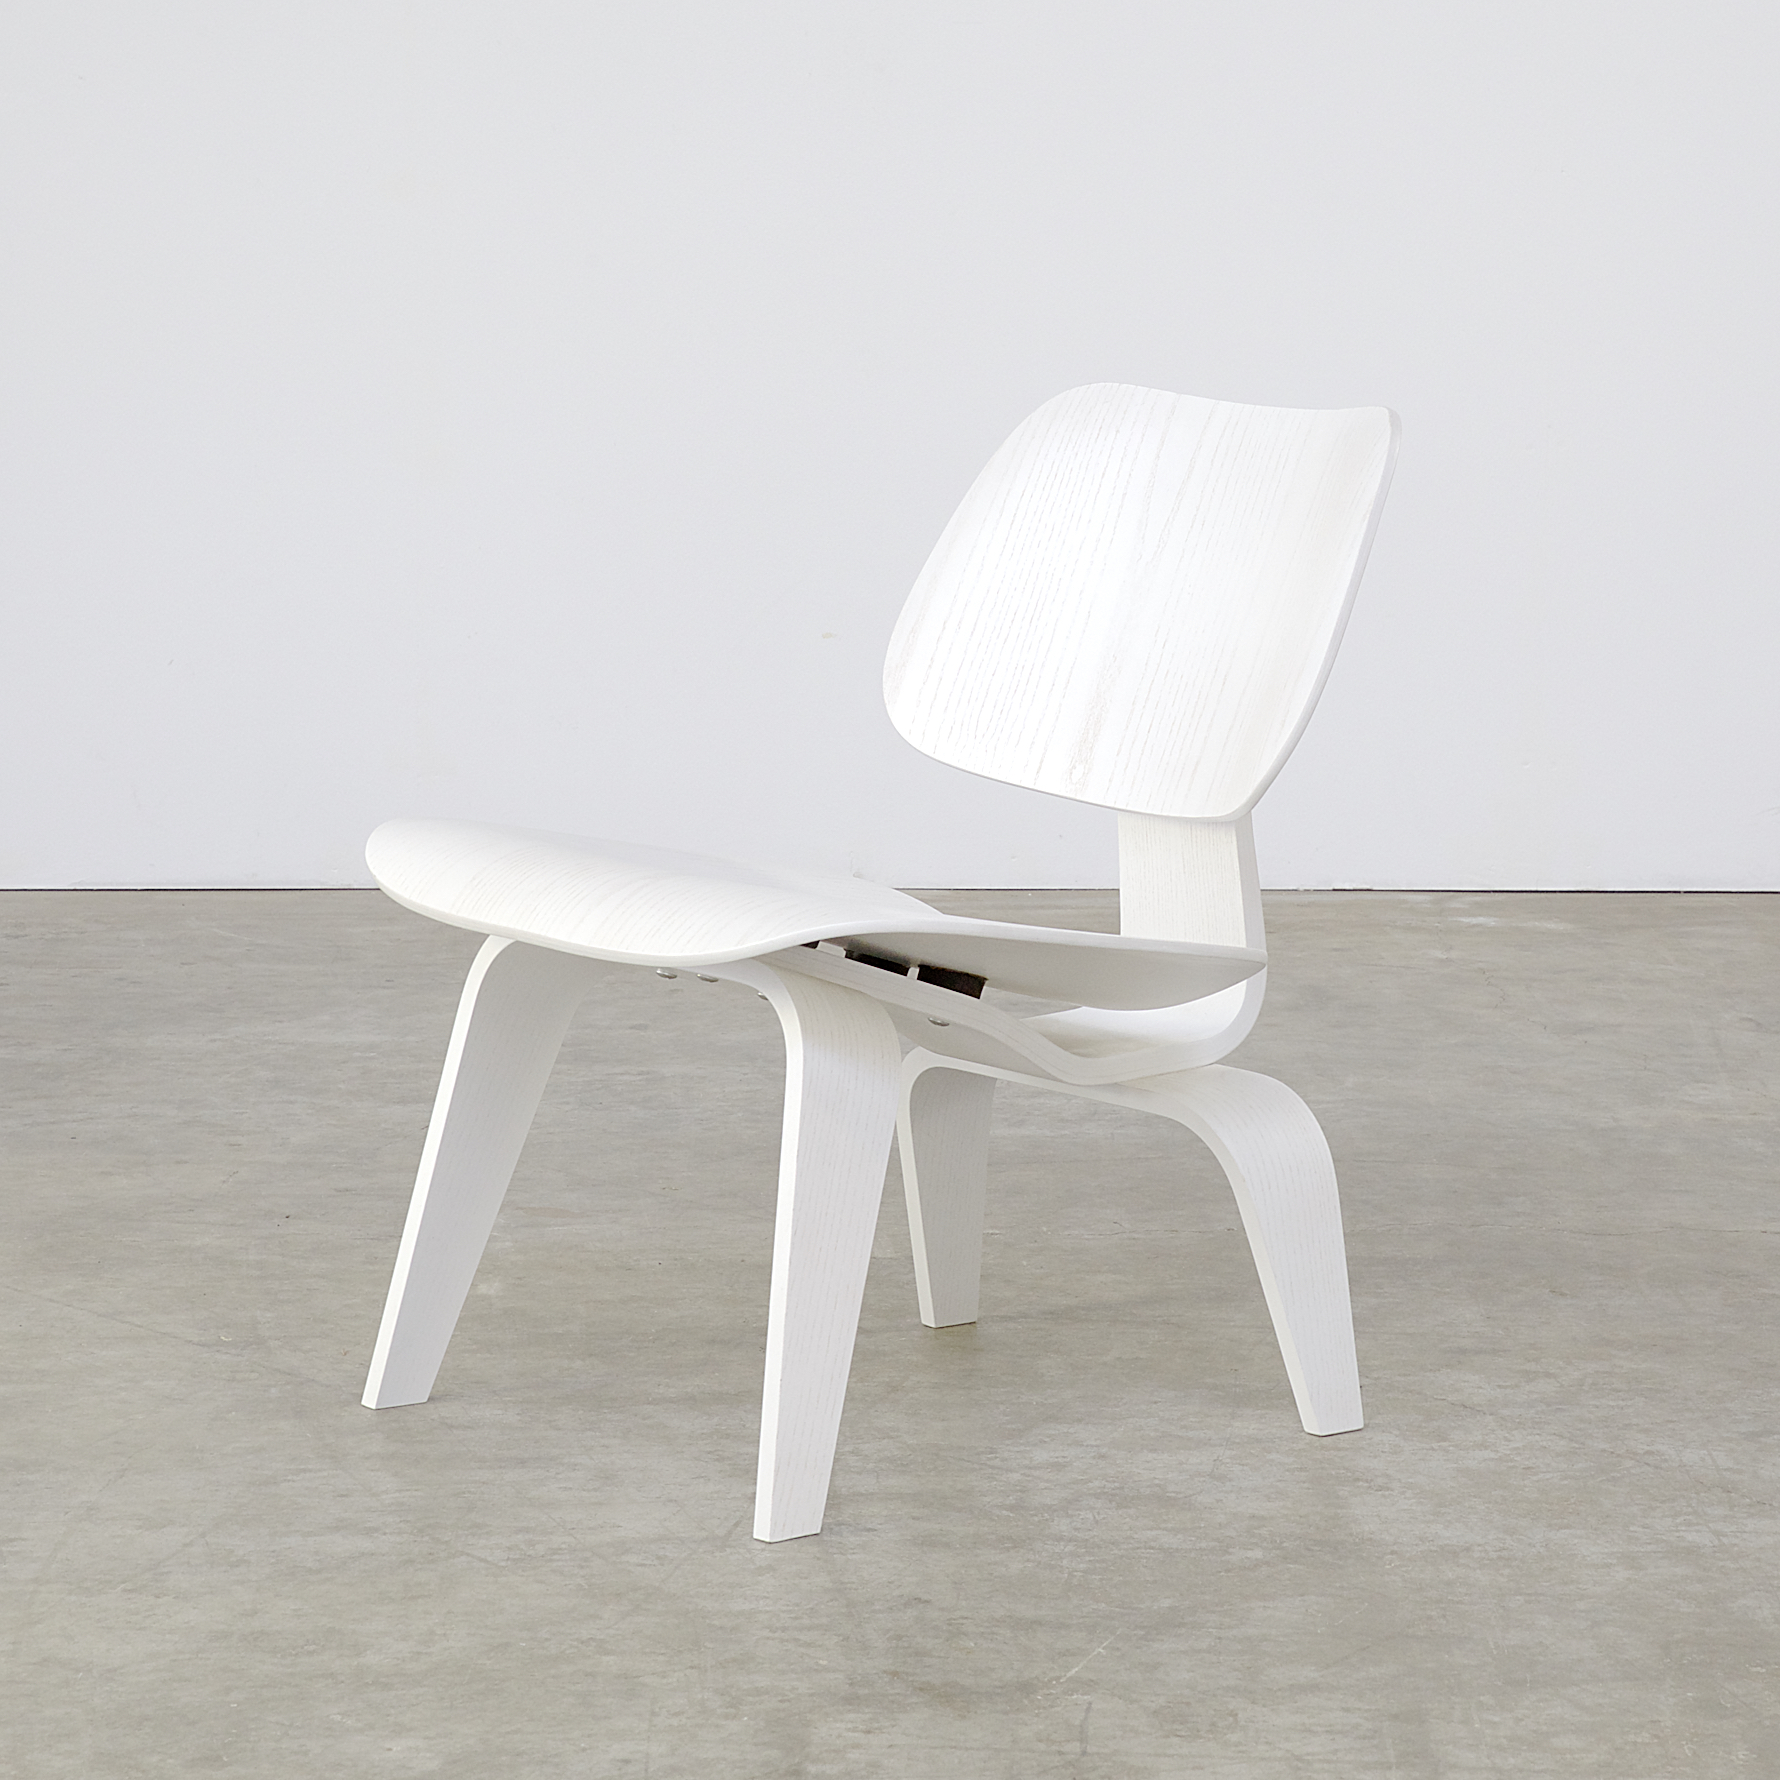 Vitra Chair Eames Eames Lounge Chair Wood Lcw White Limited Edition For Vitra